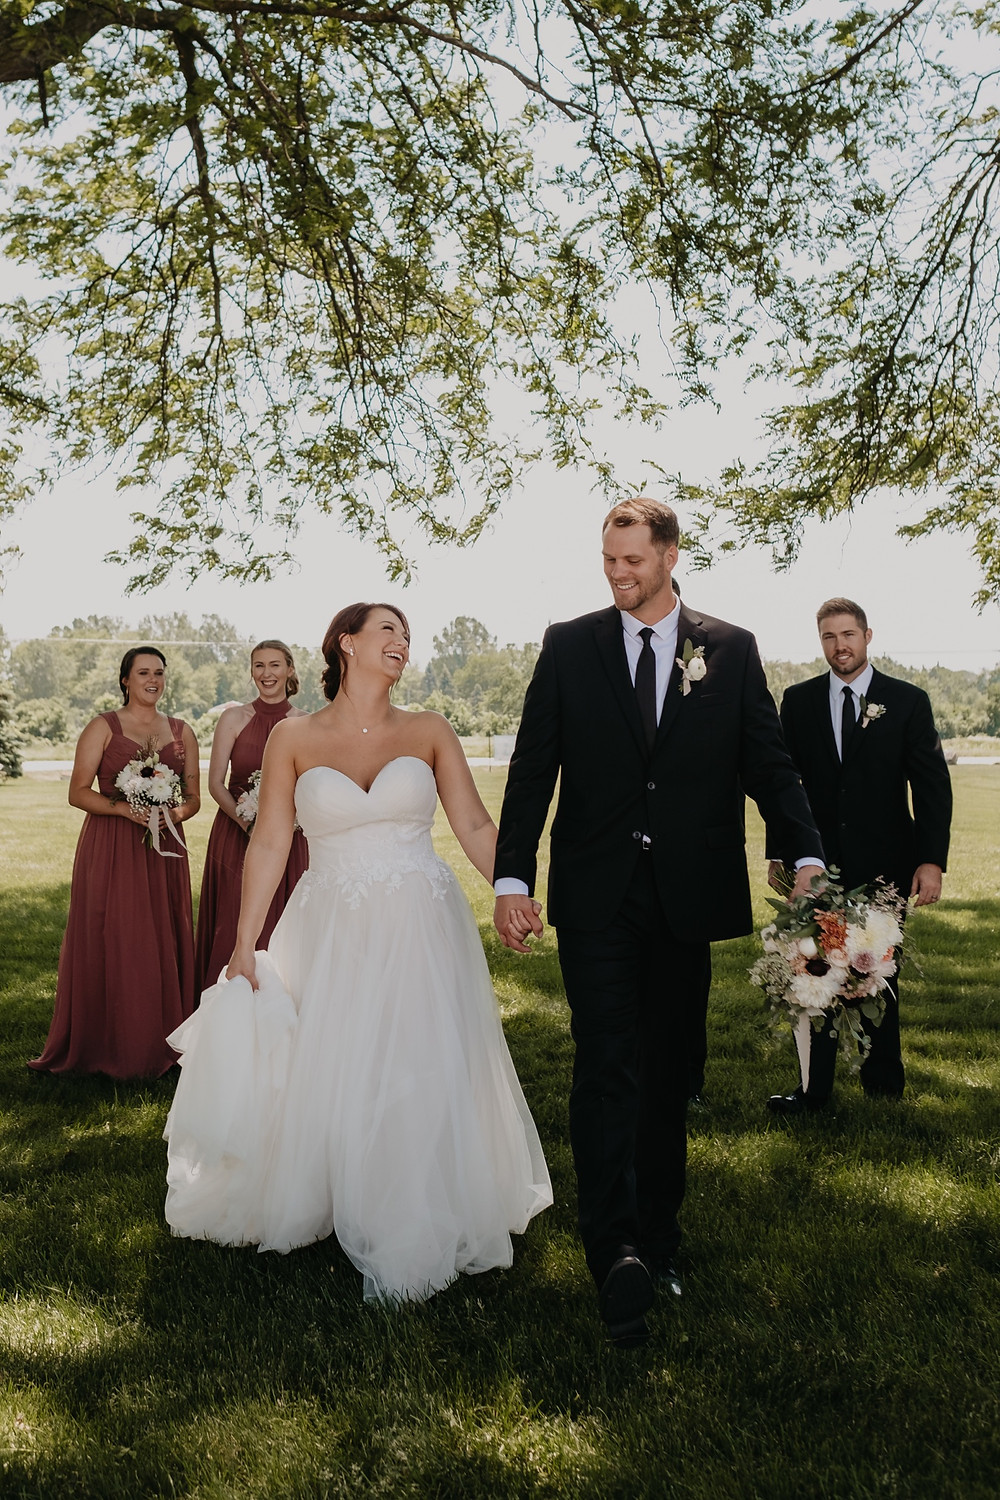 Unposed and authentic wedding photography. Photographed by Nicole Leanne Photography.